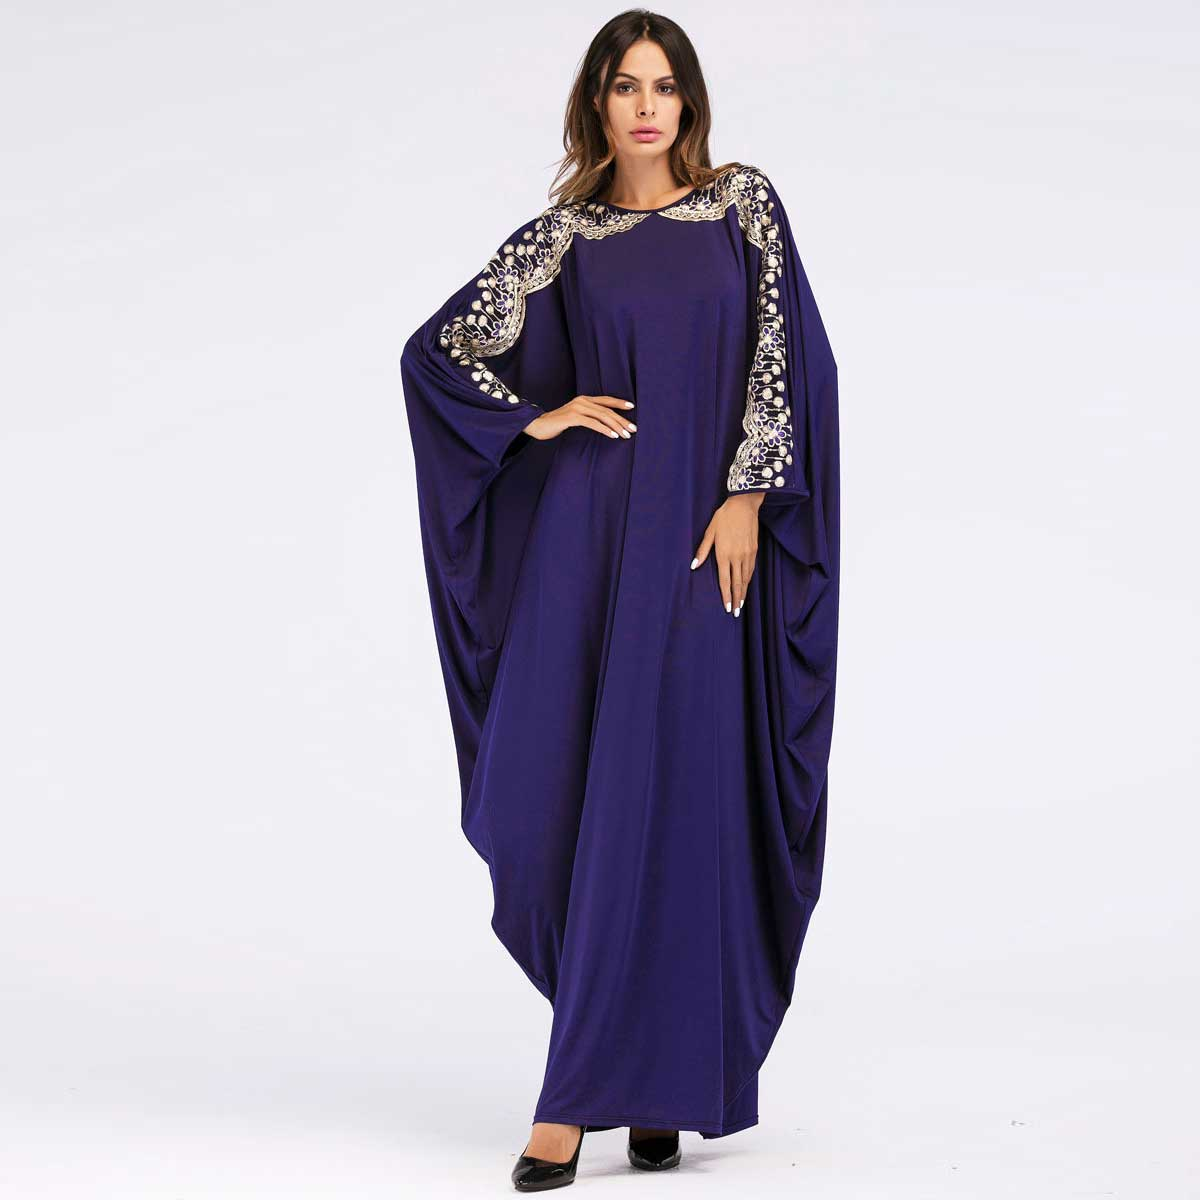 2019 Women Abaya Fashion Sequined Batwing Sleeve Maxi Dress Ethnic Thobe Chic Gown Patchwork Robe VKDR1439